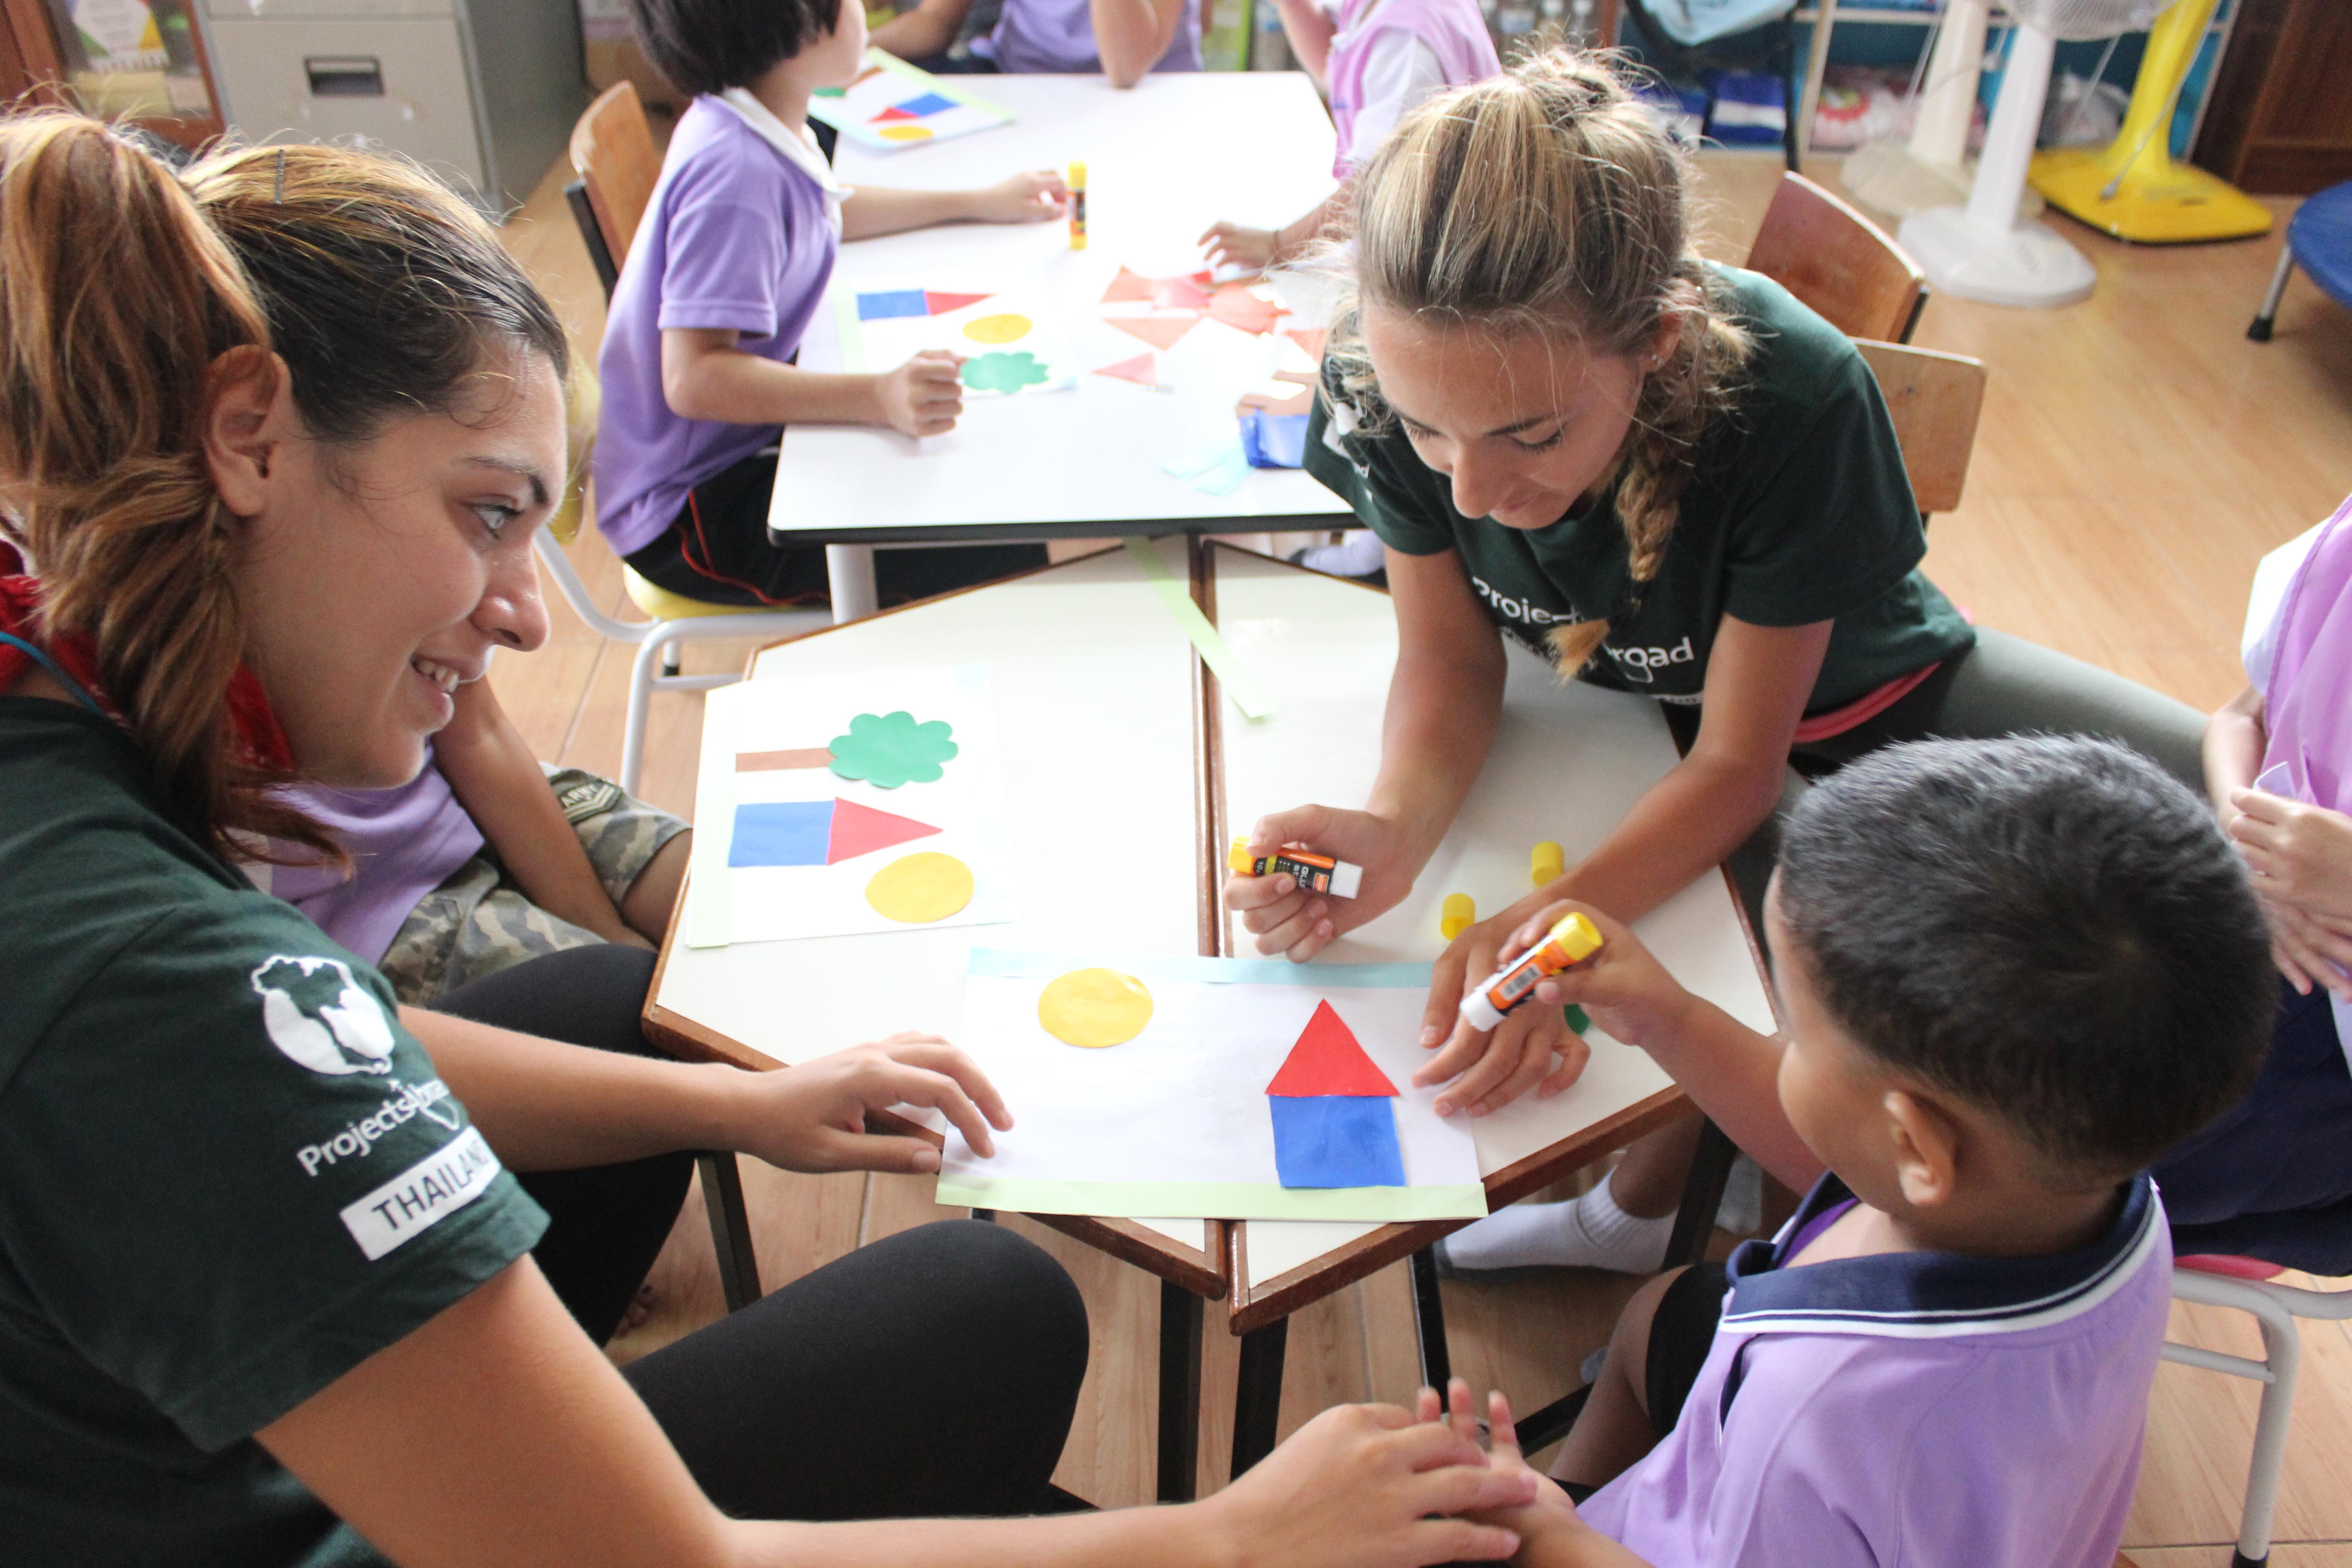 Projects Abroad Childcare volunteers work with children at a daycare centre in Thailand to complete a colouring activity.